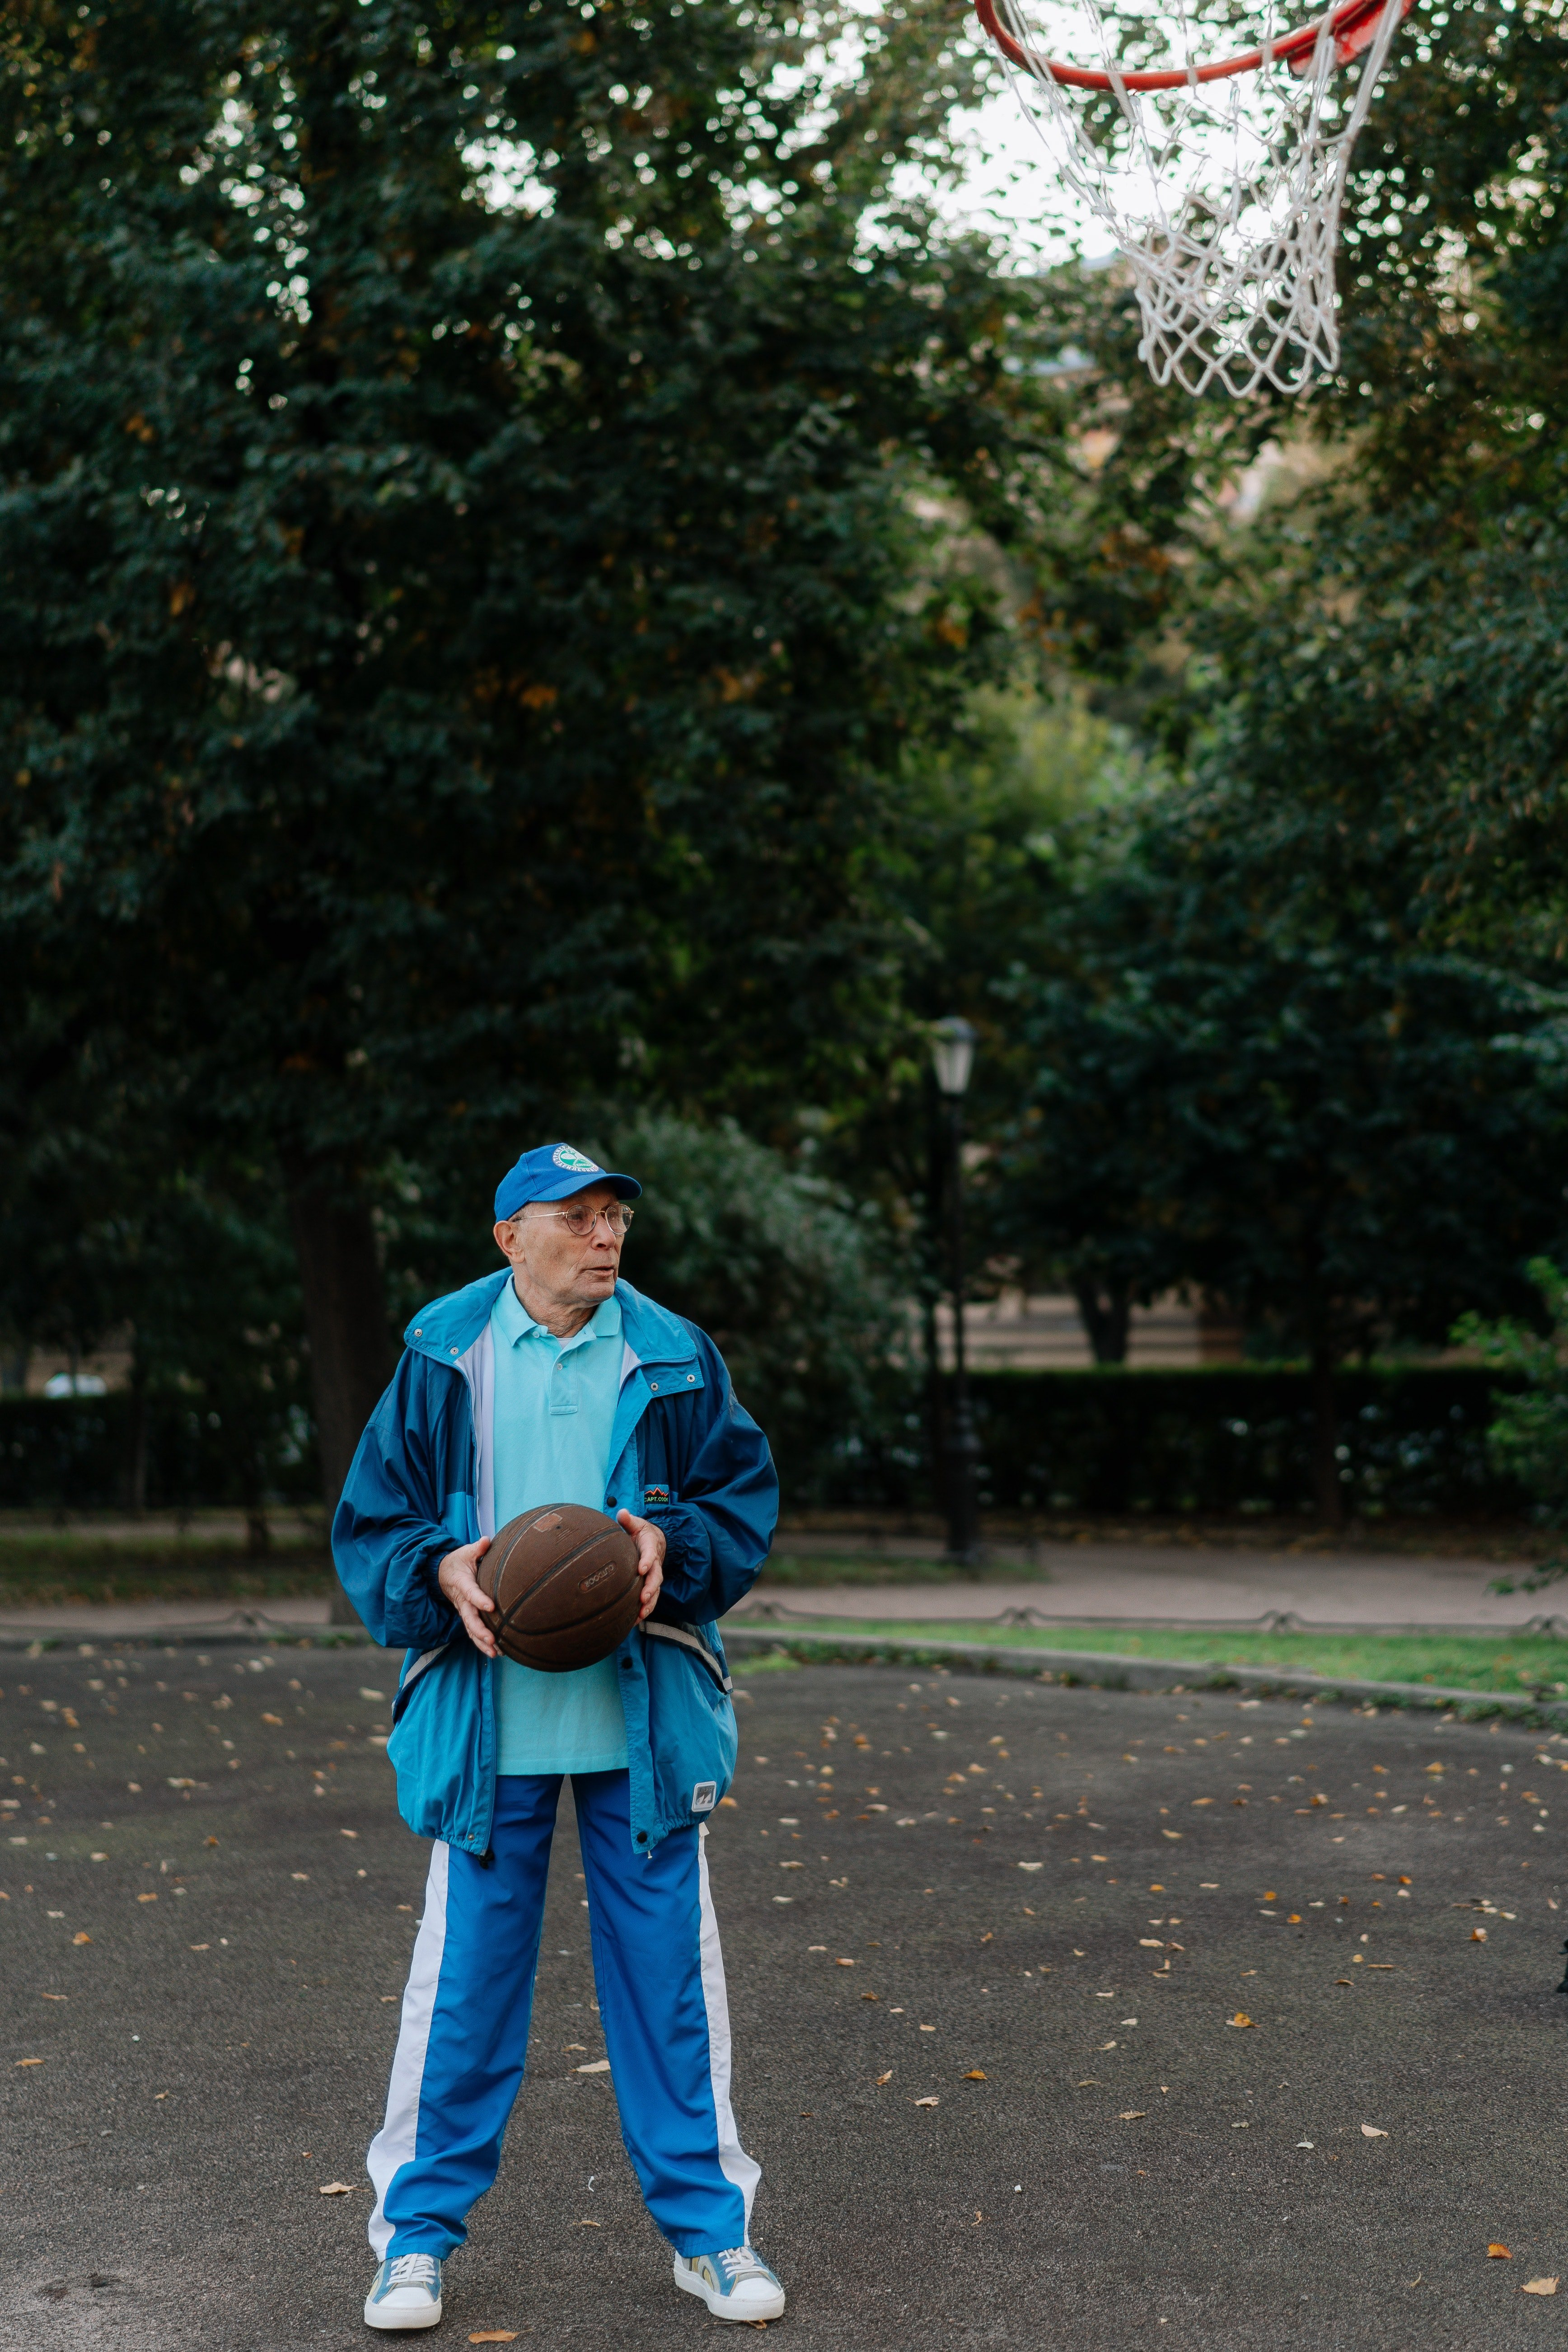 An old man holding a ball | Photo: Pexels